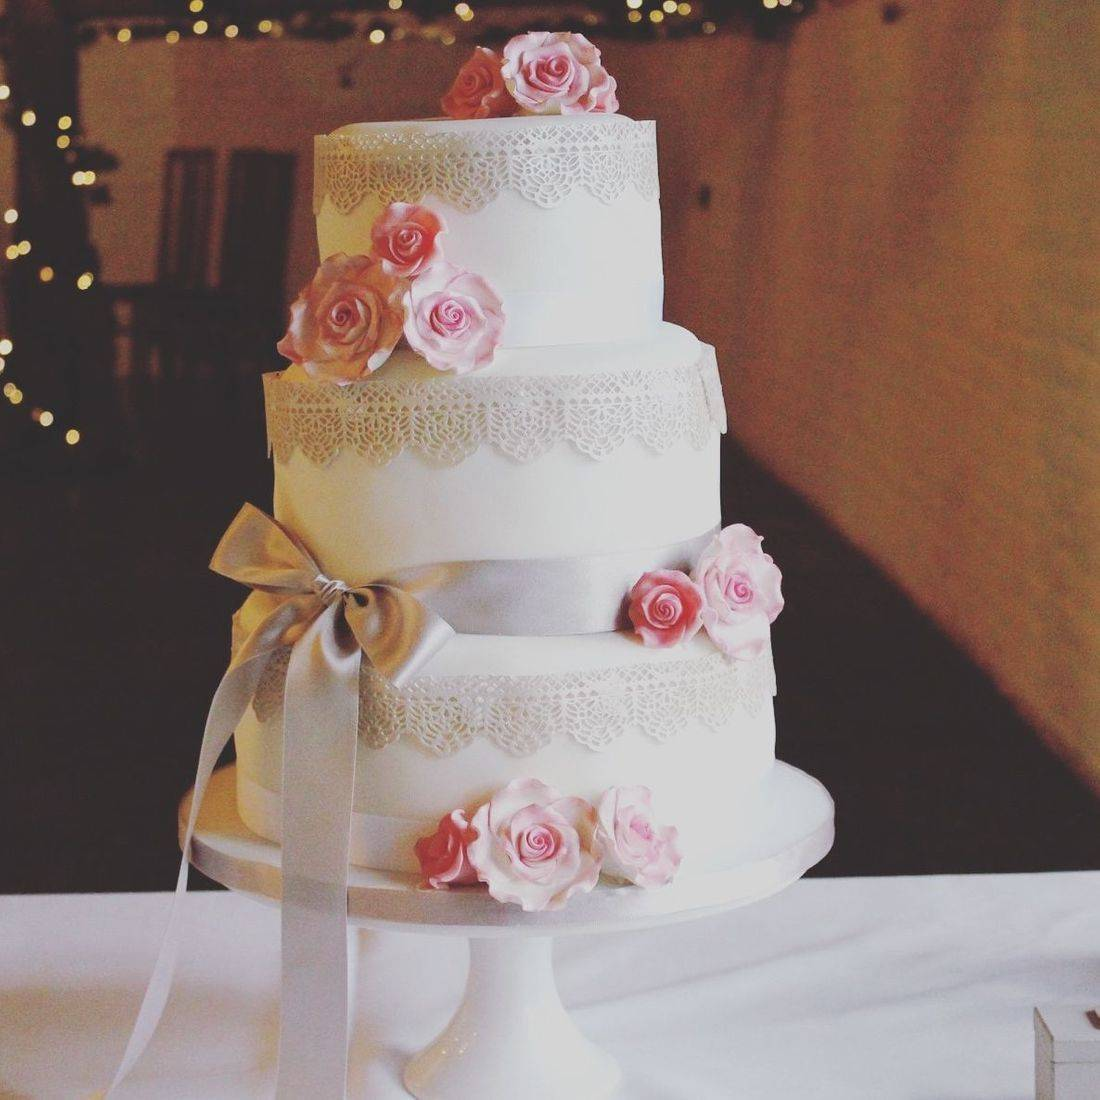 Vintage Roses and Lace Stacked Wedding Cake Fabu-Lous Cakes